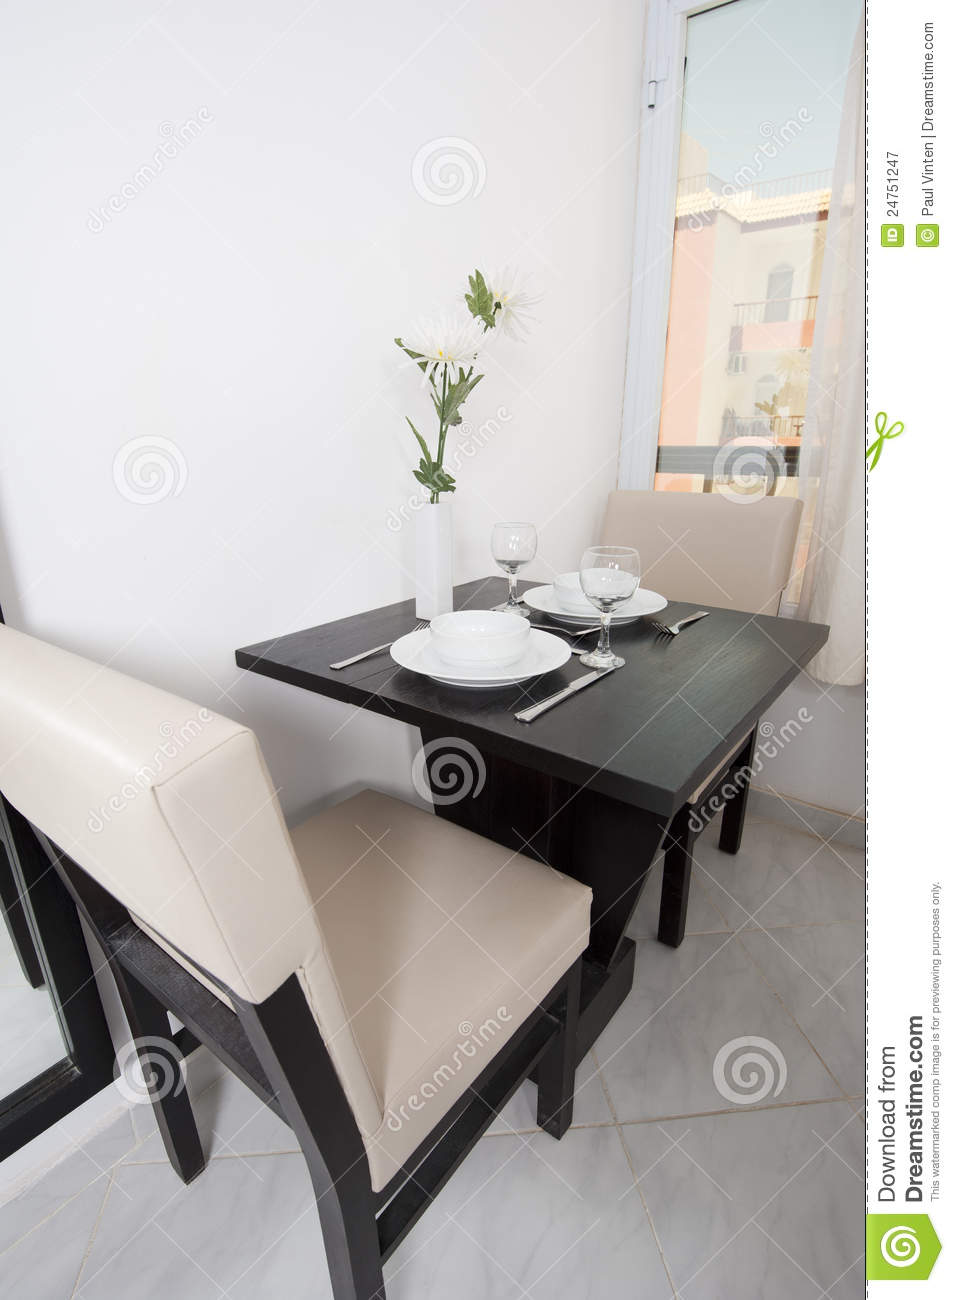 Small Dining Table In An Apartment Royalty Free Stock Photography